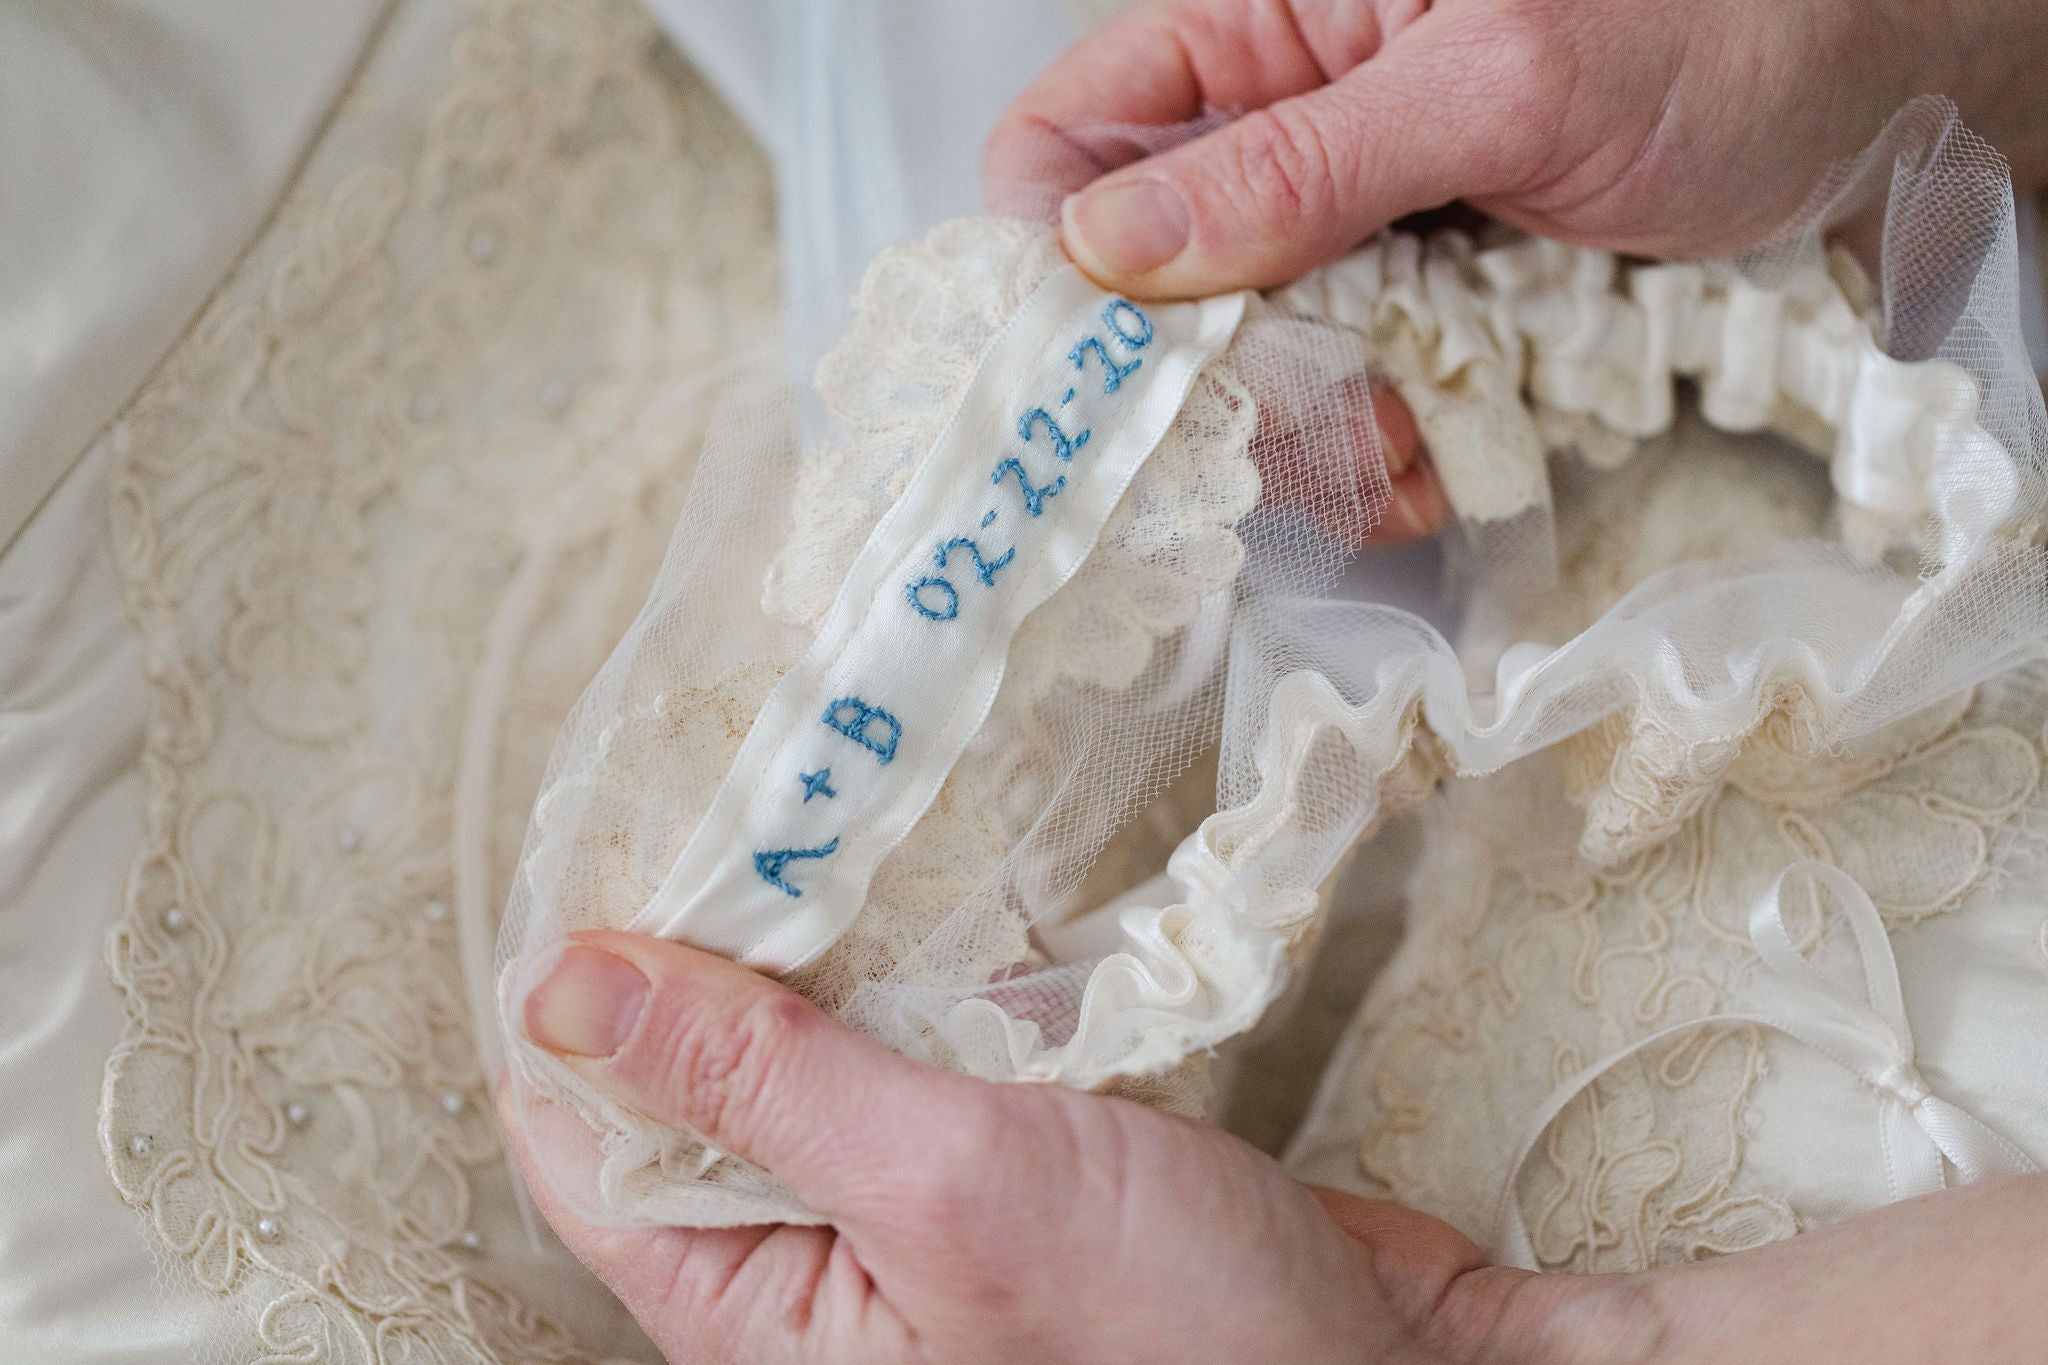 wedding heirlooms handmade from the bride's mother's wedding dress by luxury garter designer, The Garter Girl